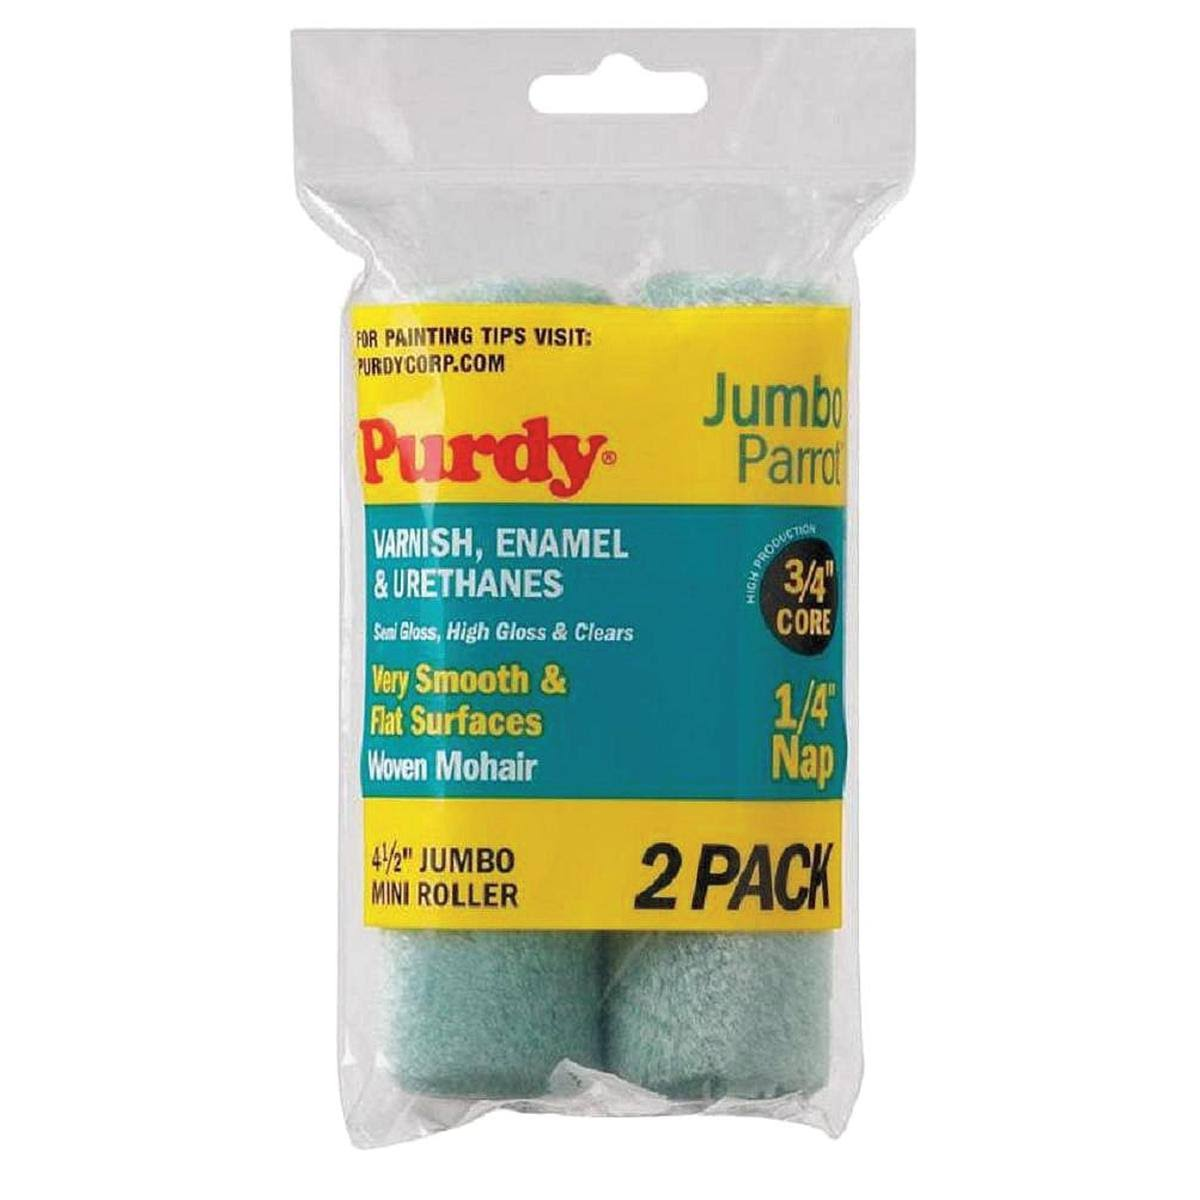 Purdy 140624040 Mini Paint Roller Cover - 2 pack